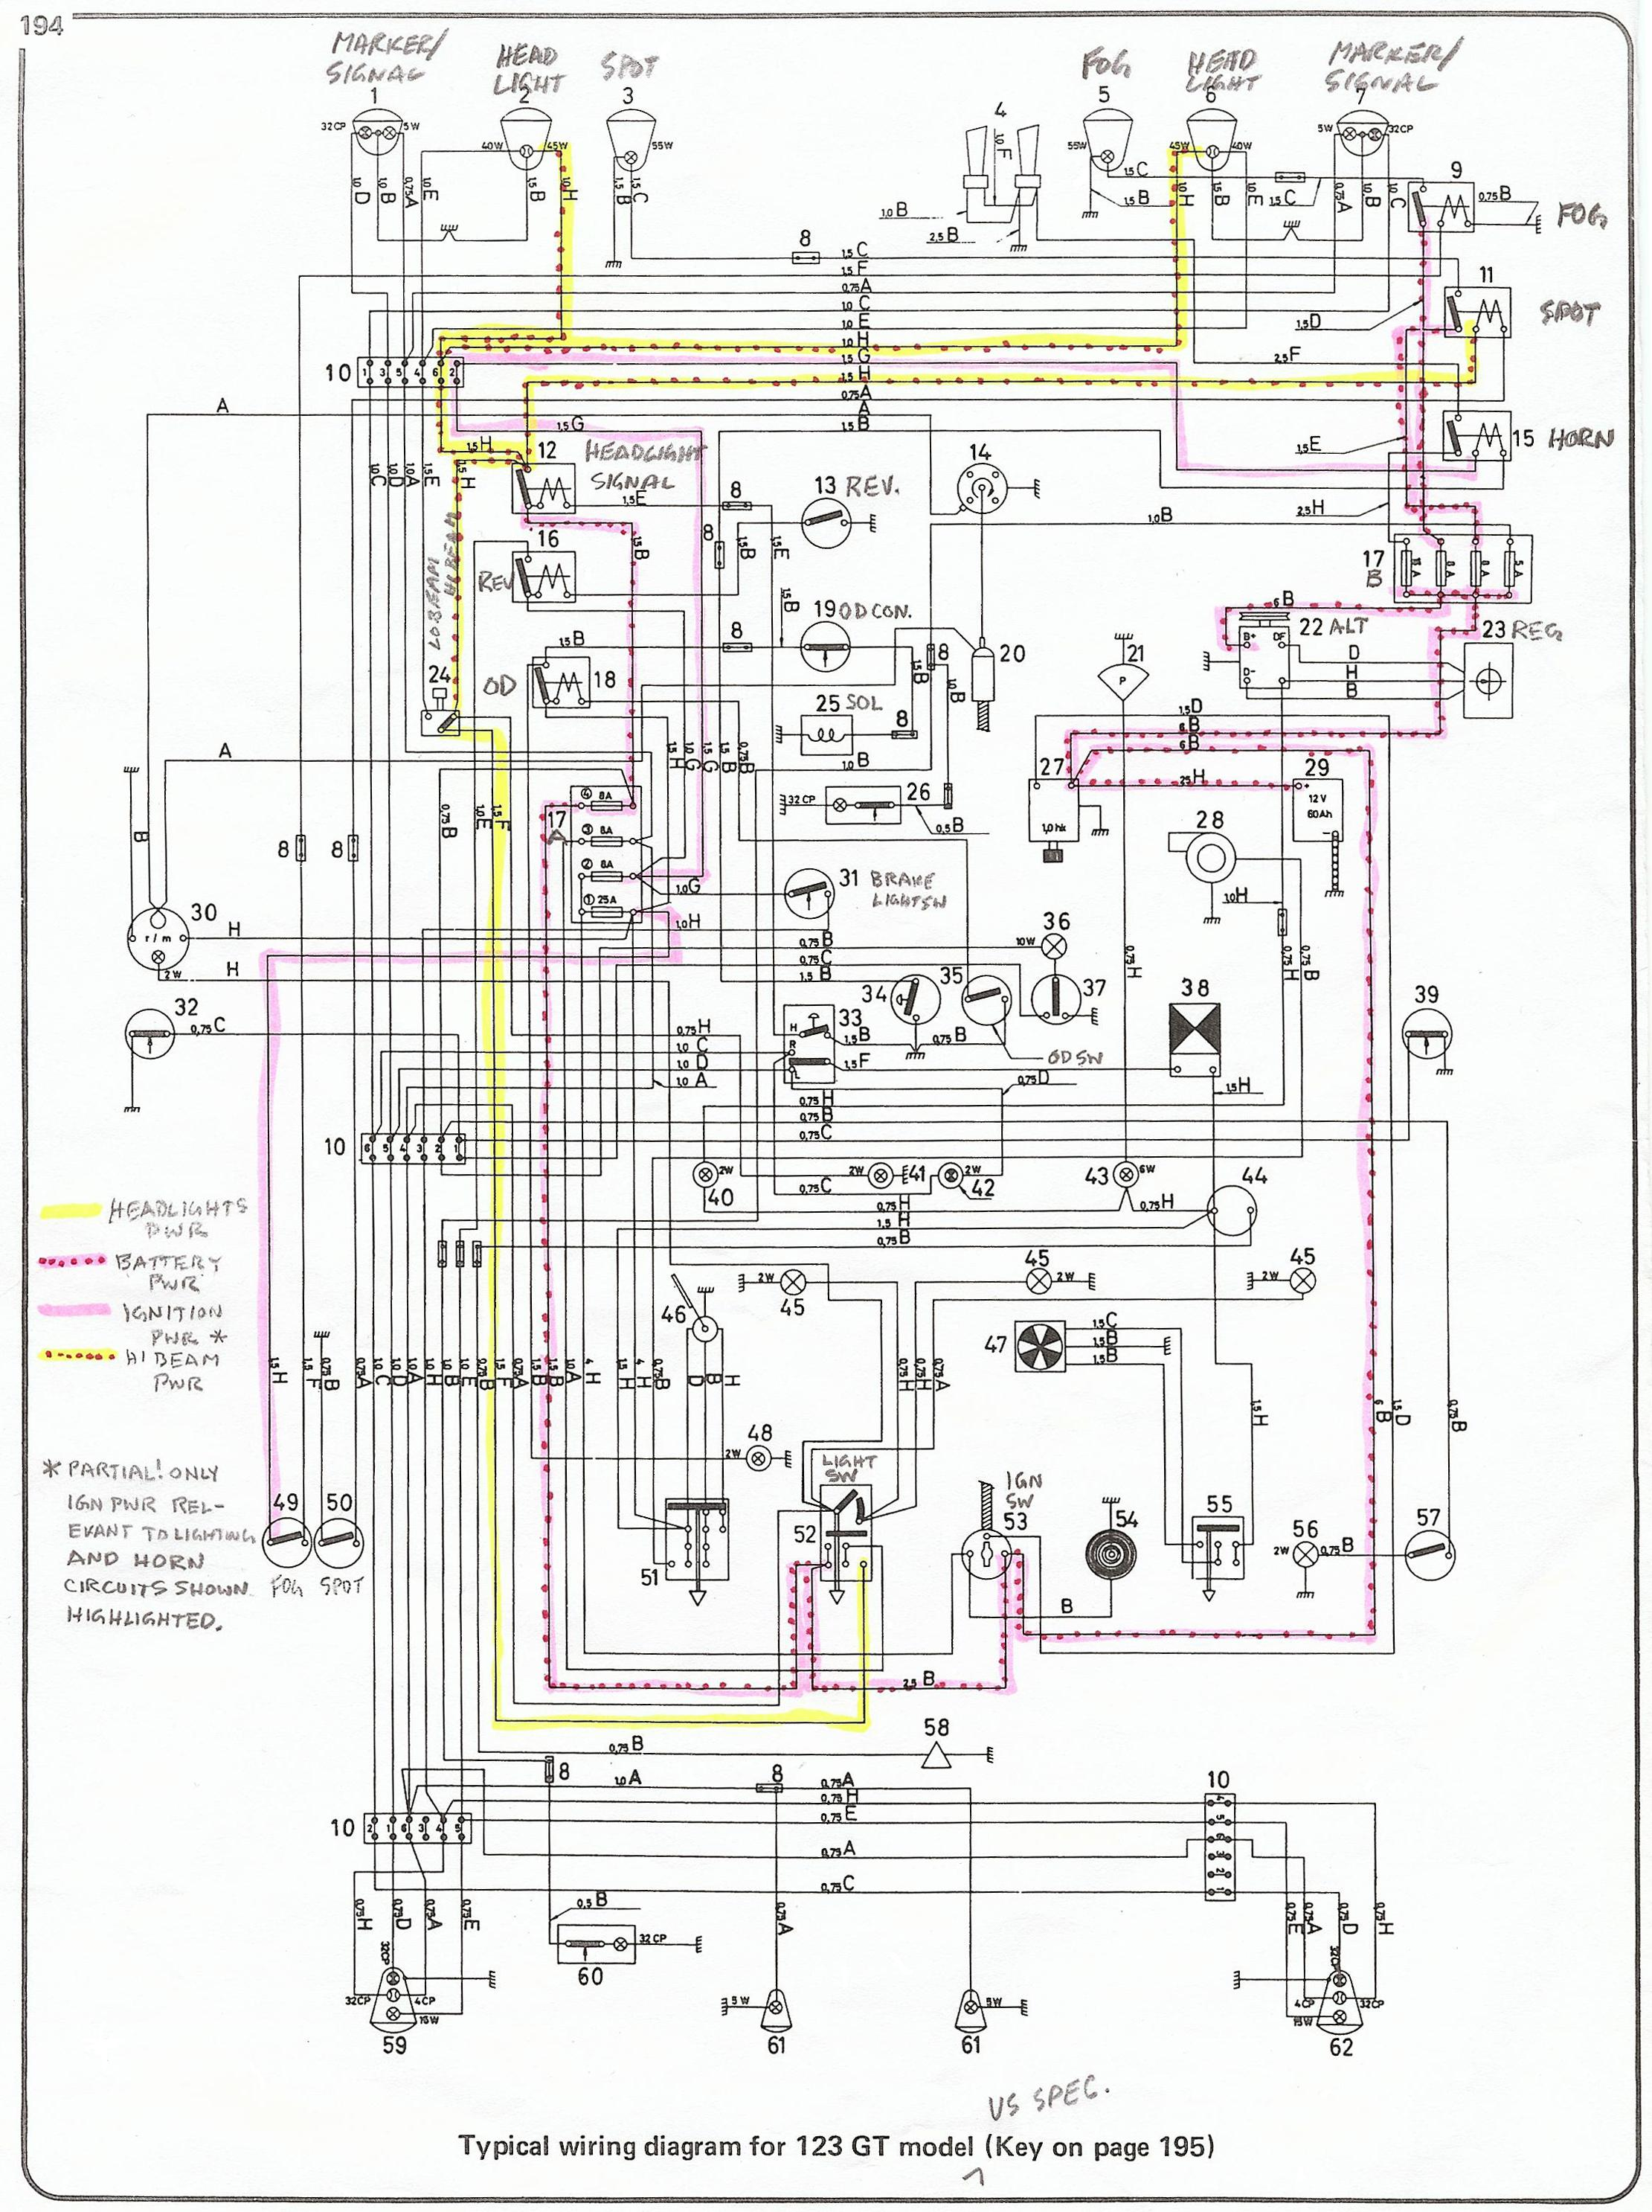 Volvo 123 Gt Complete Wiring Diagram All About Diagrams Em 123gt Consideration Of Lighting Differences Rh Sw Com